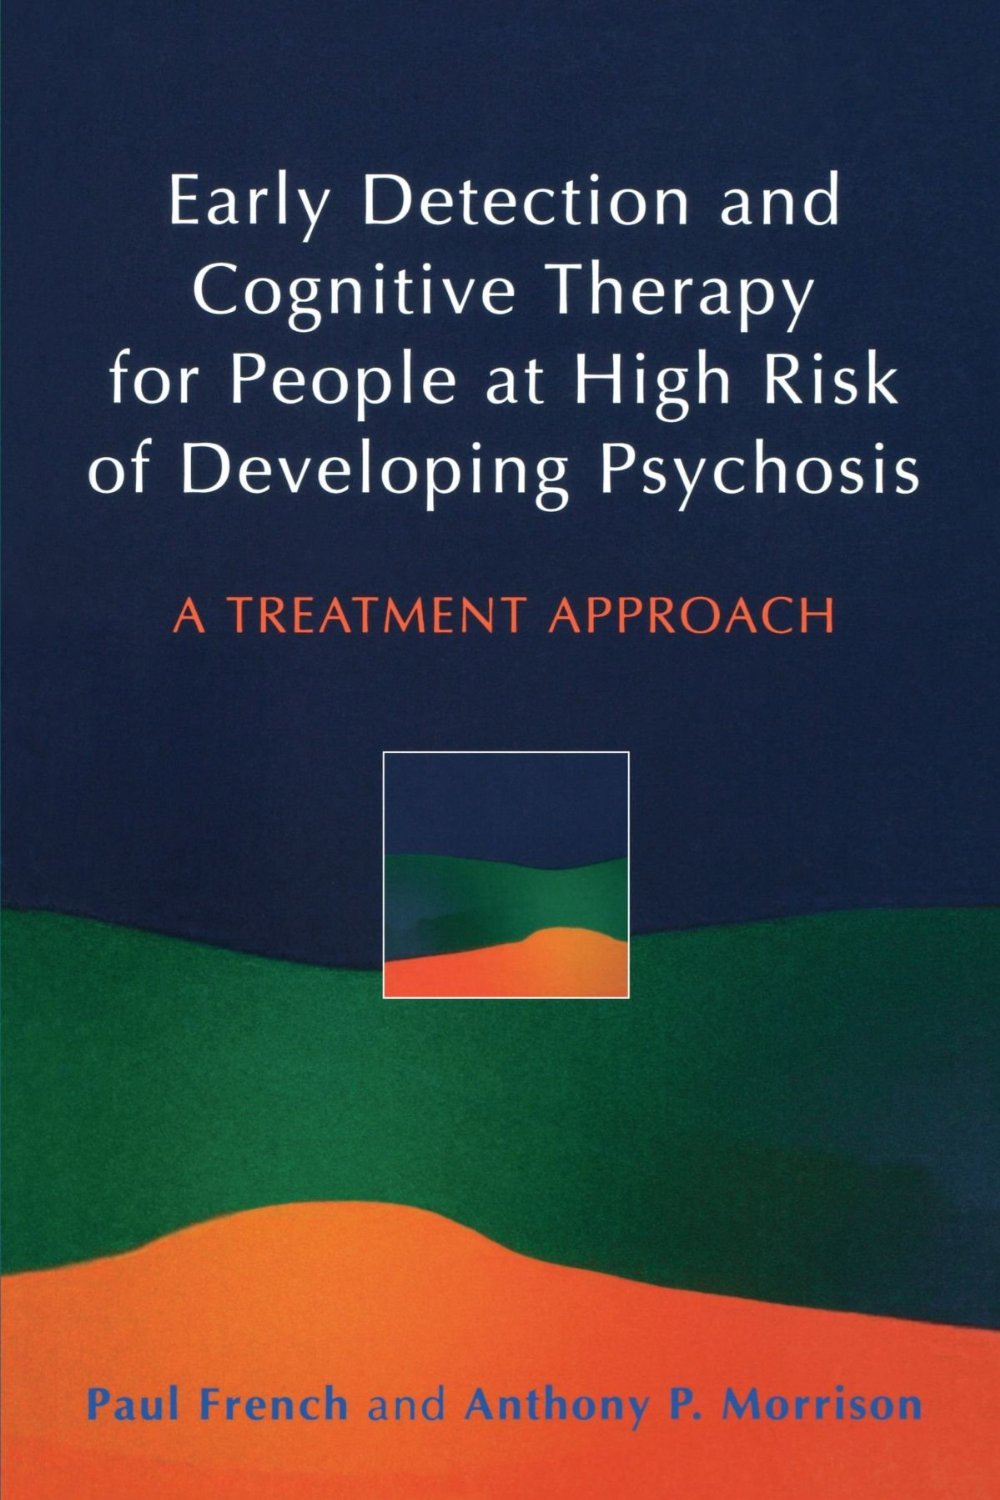 12 early detection and cog therapy for people at high risk of dvlping psychosis Websites, Books & Applications